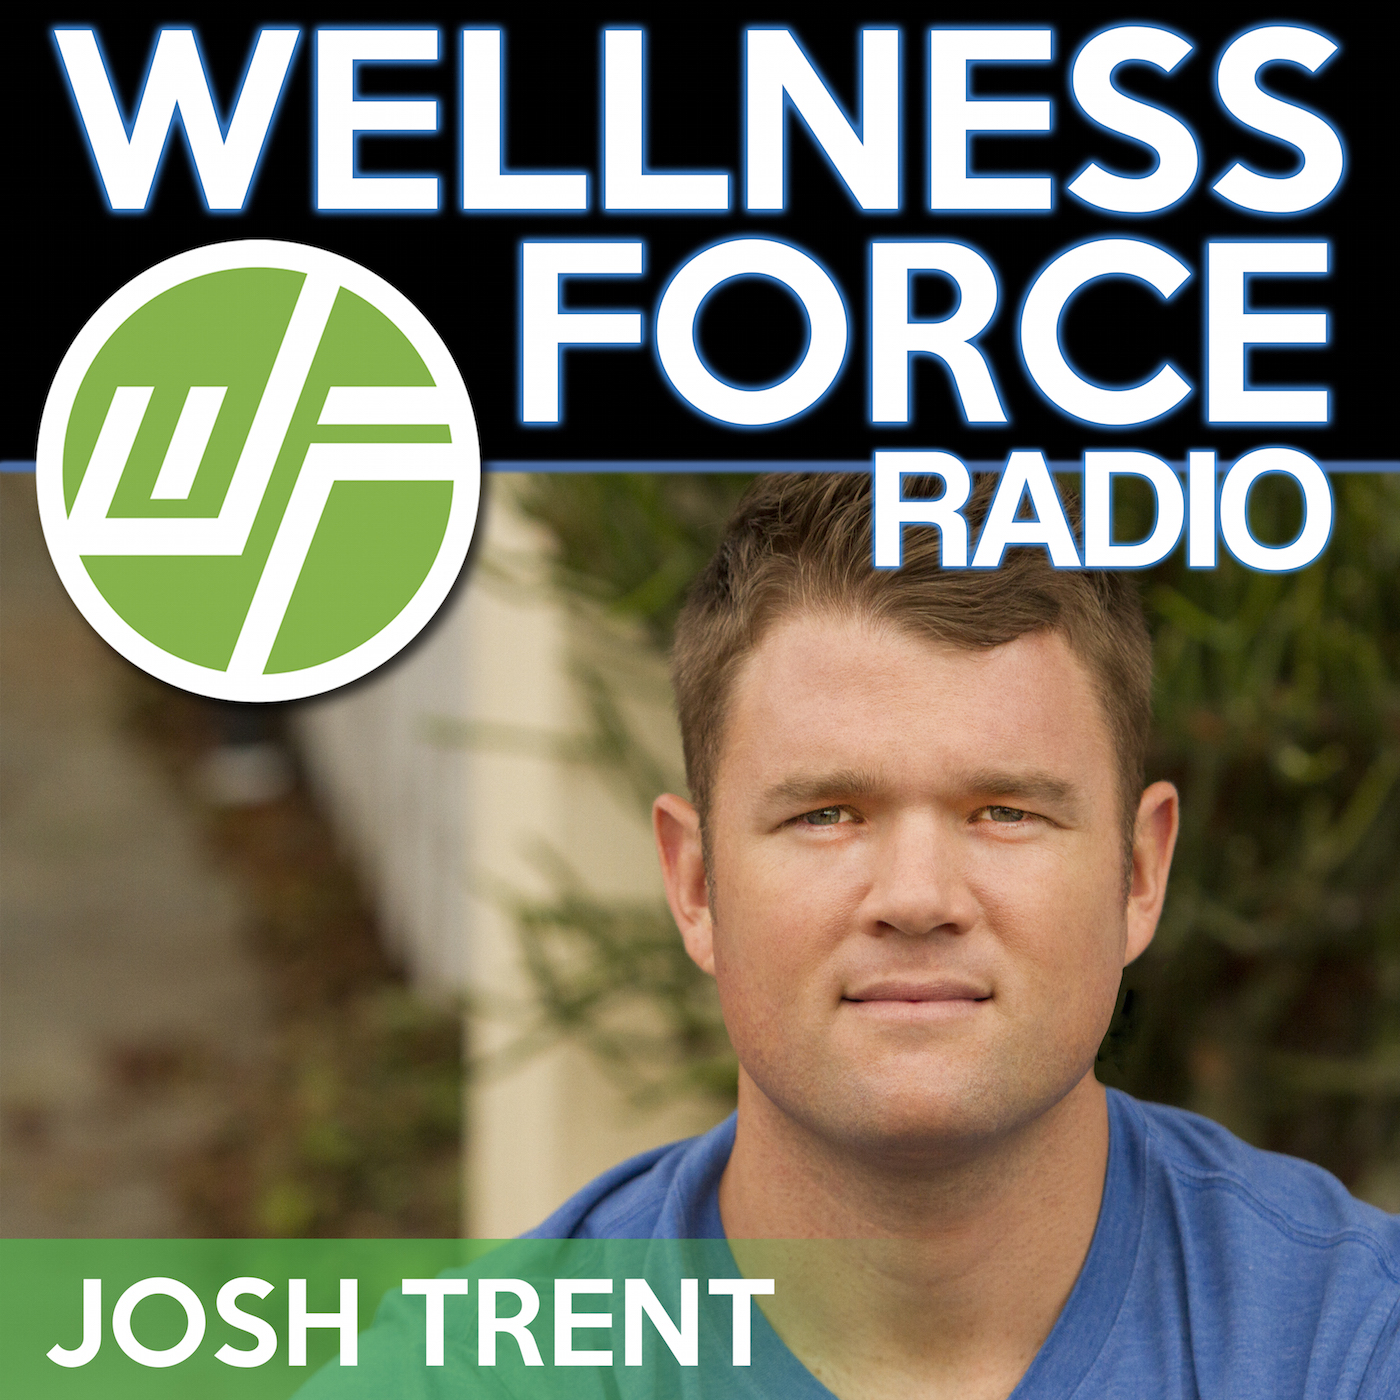 wellness-force-radio